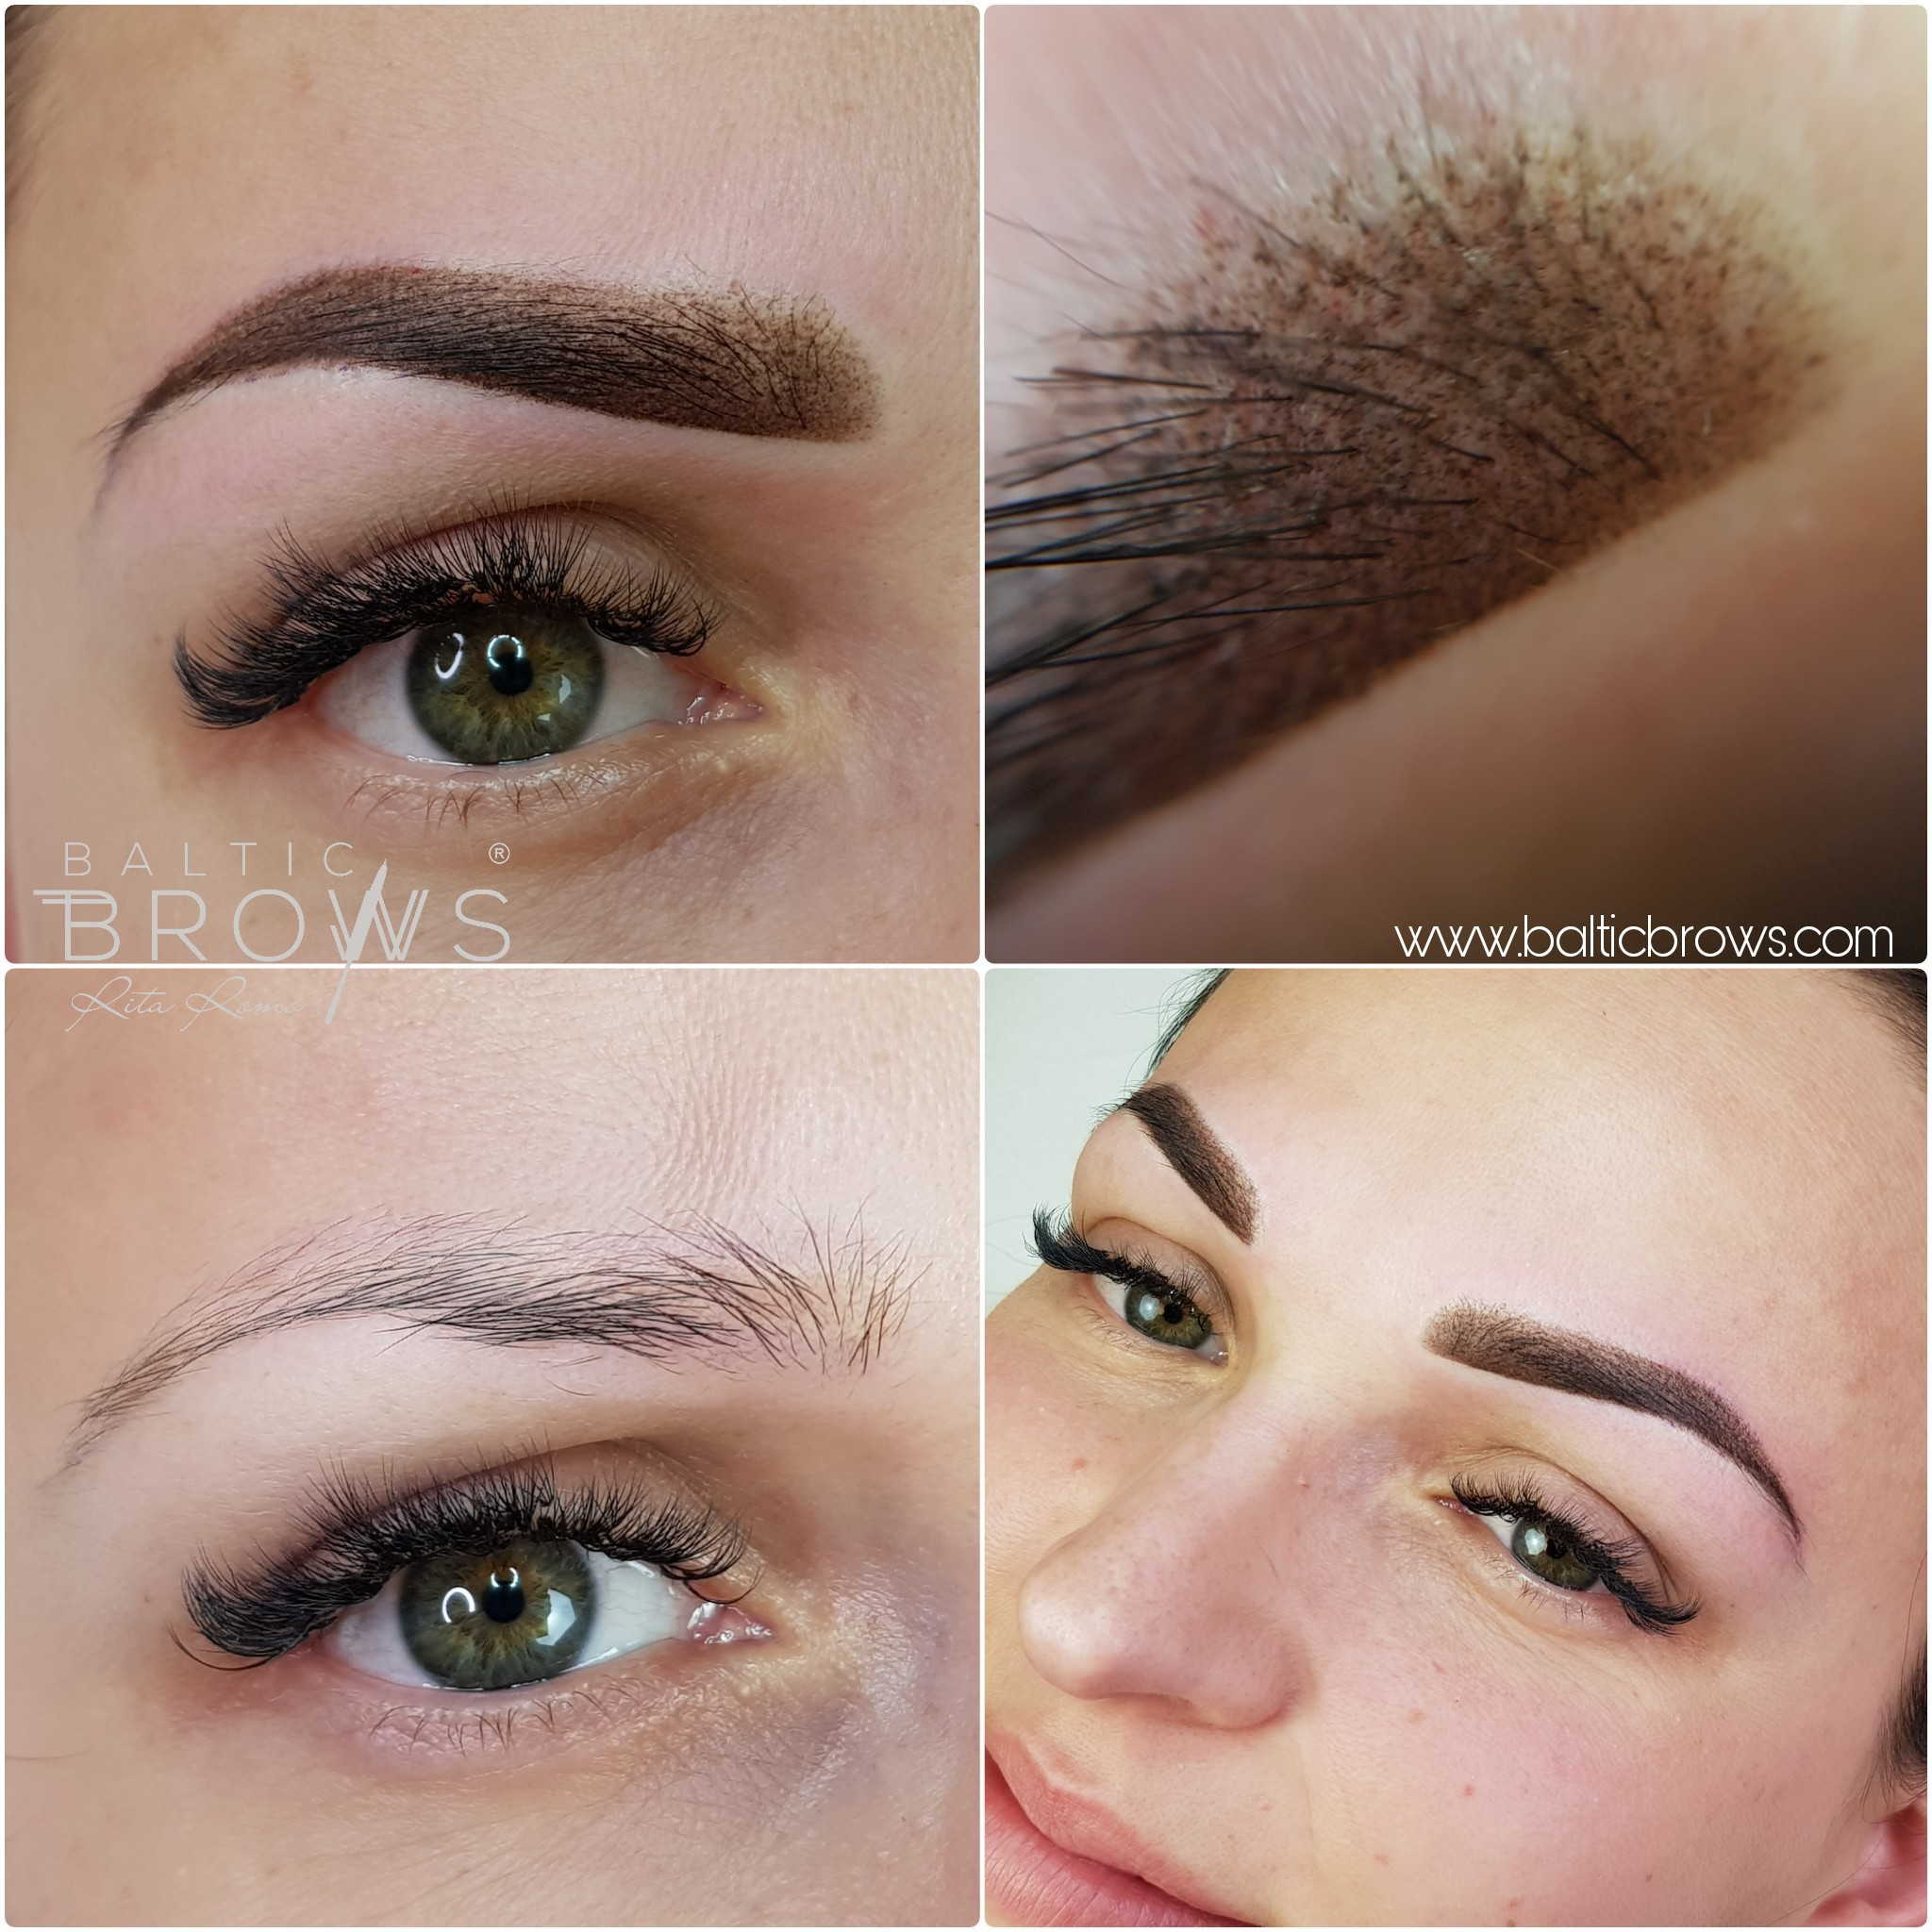 Ombre brows machine - Balticbrows